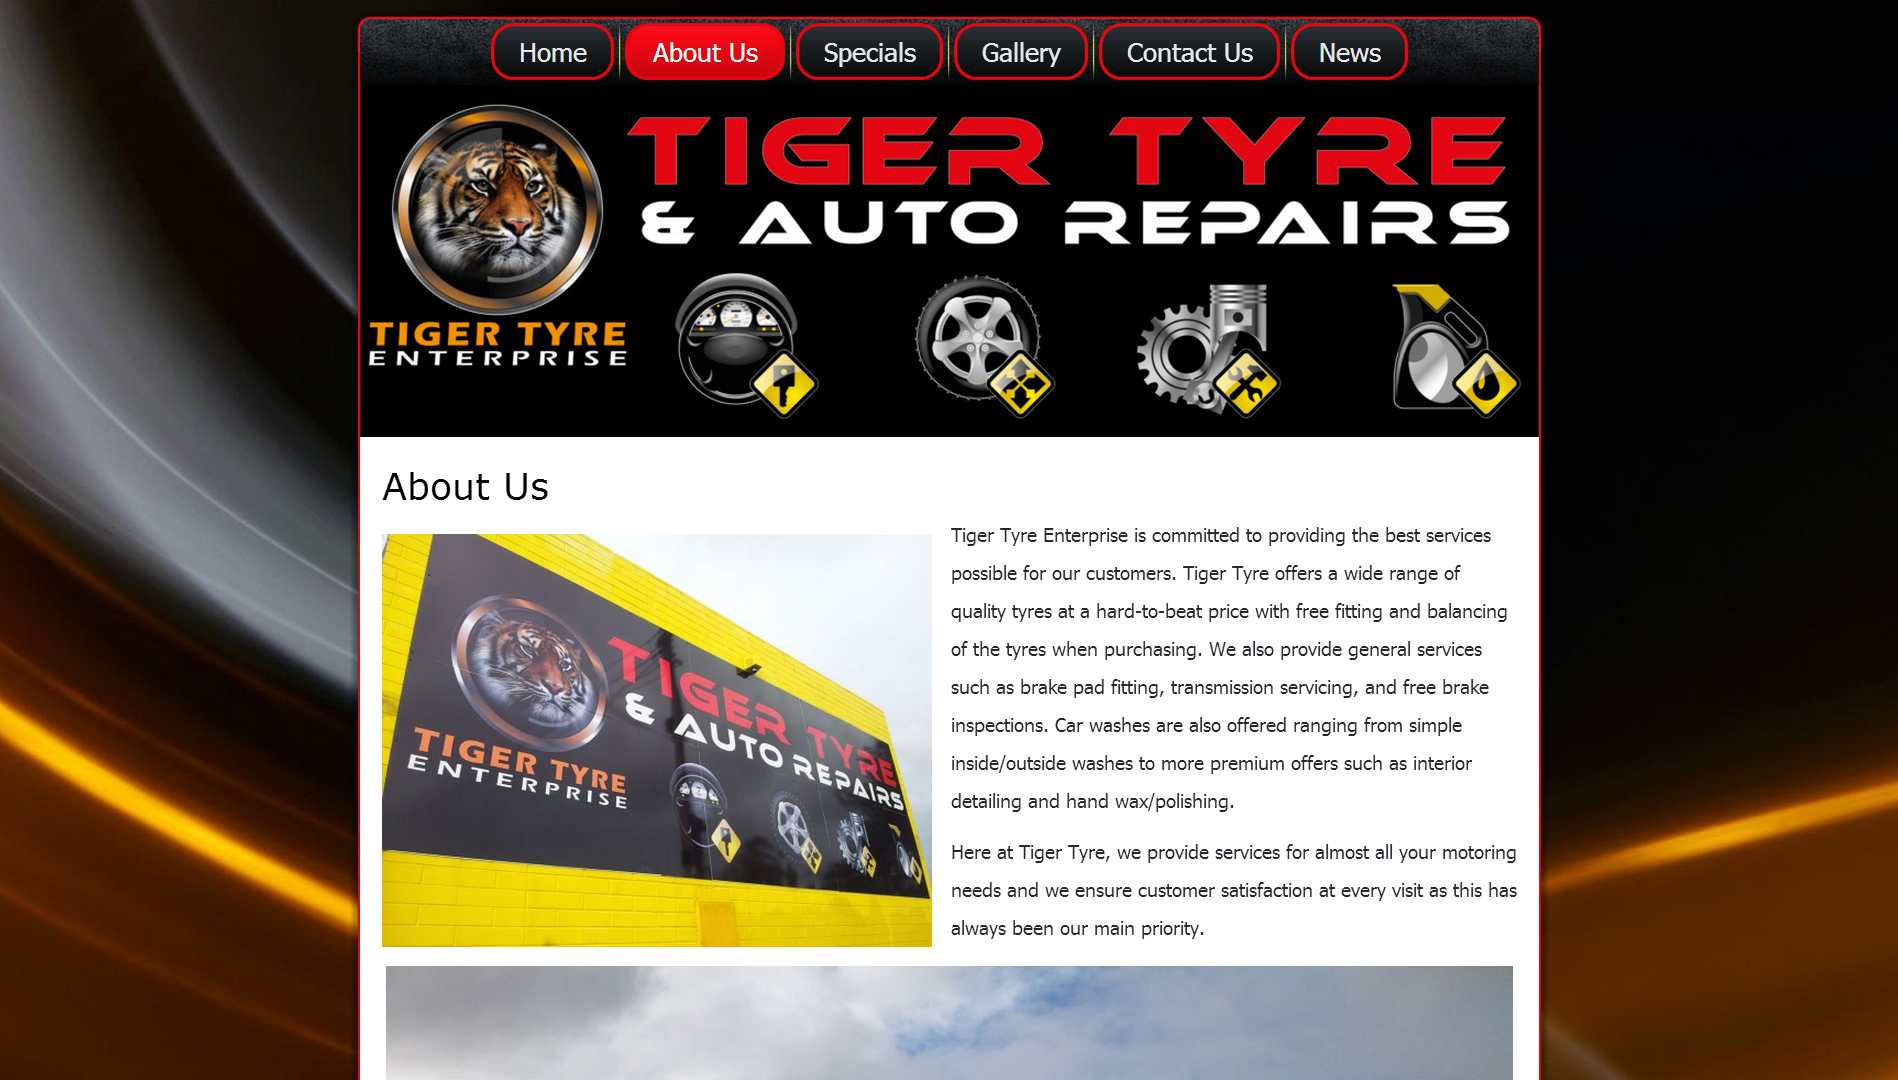 Tiger Tyre & Auto Repairs